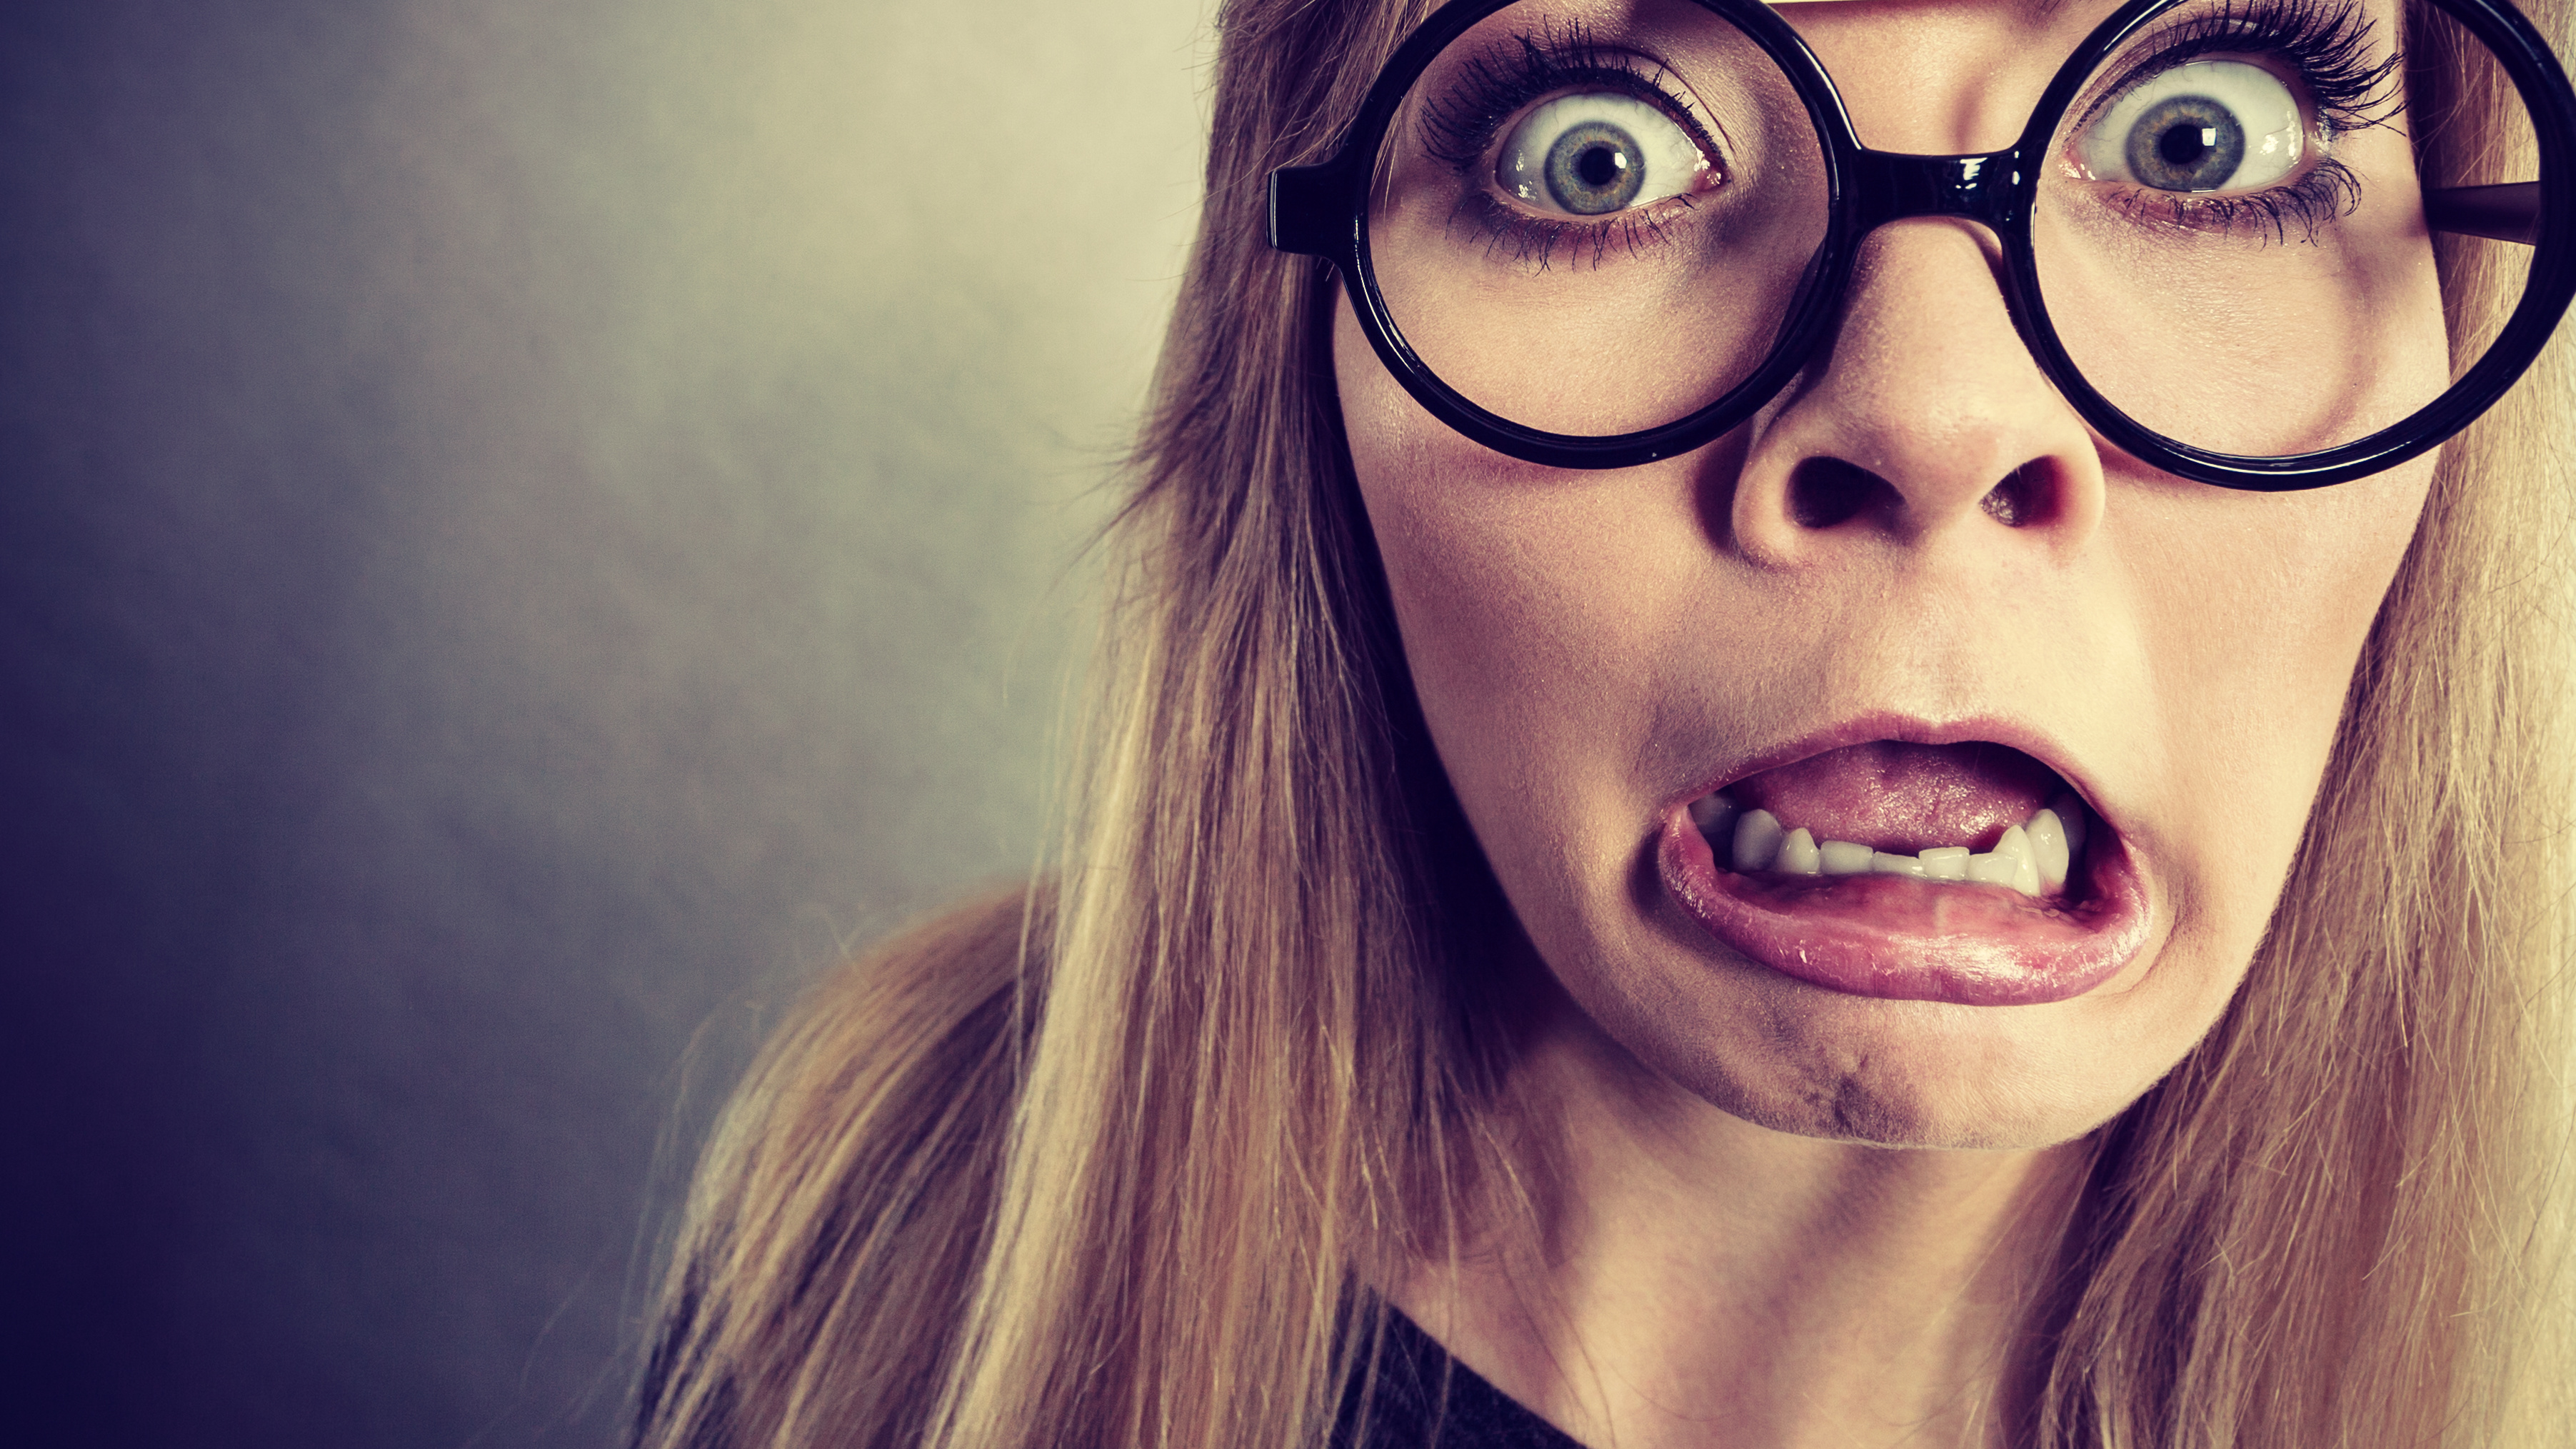 Closeup woman shocked face with eyeglasses